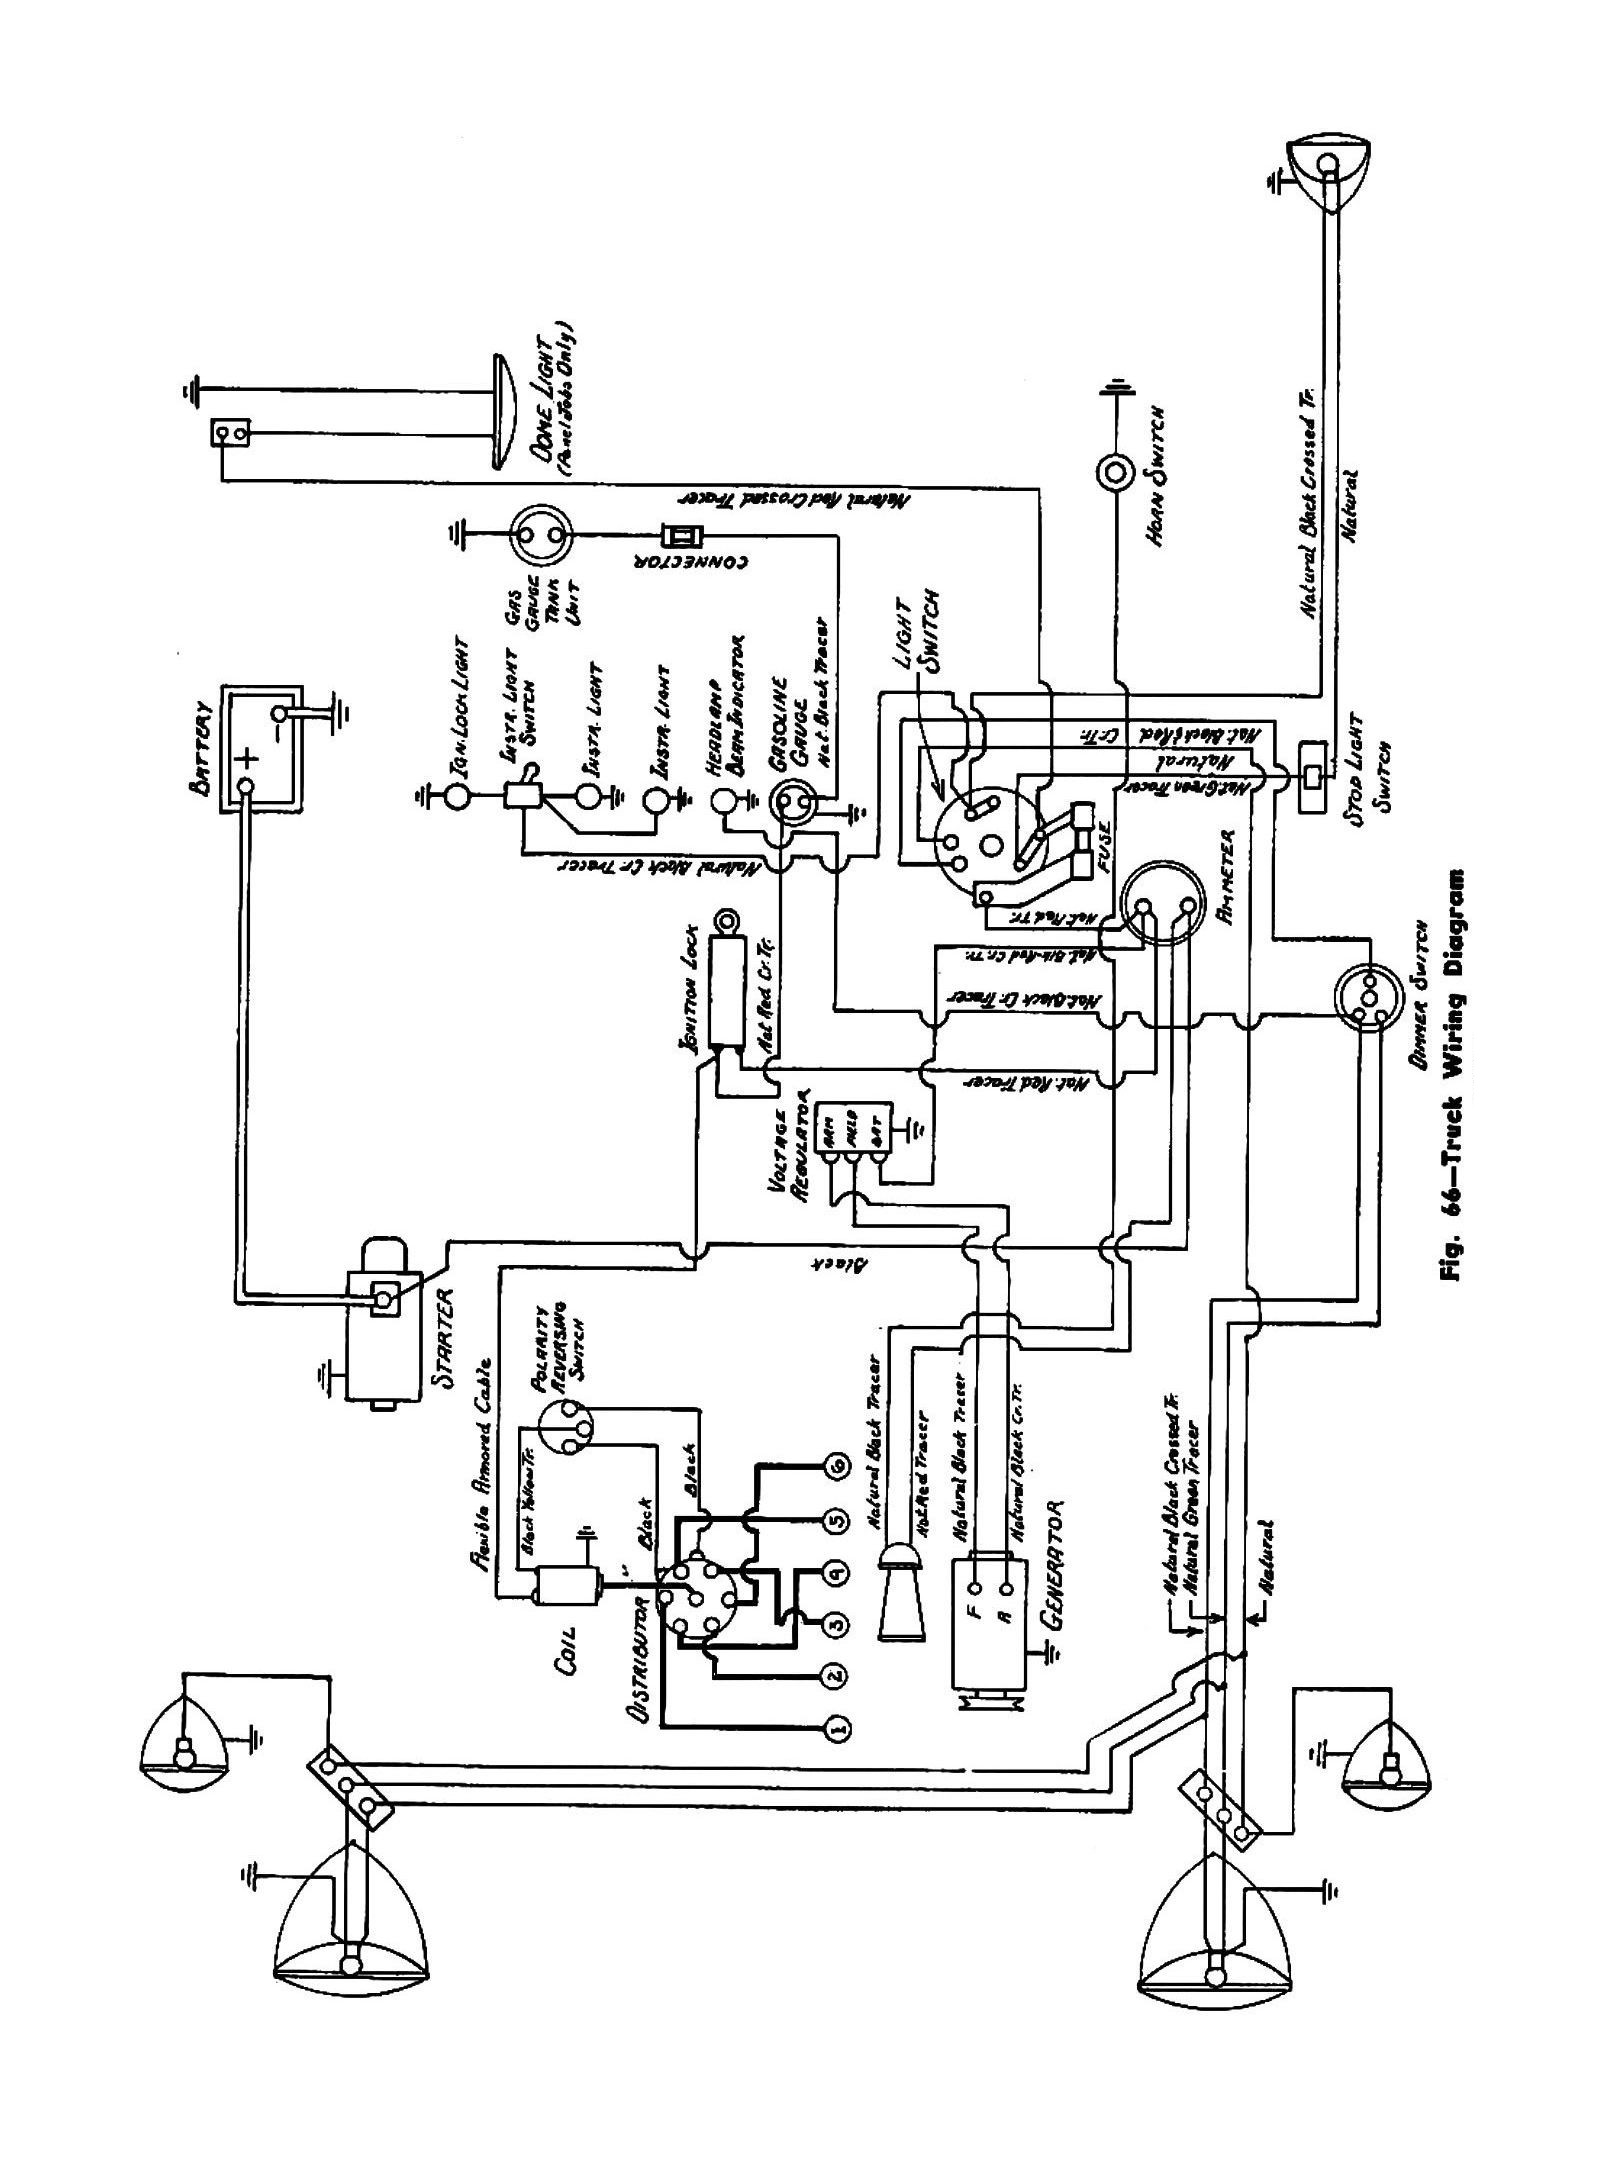 45truck chevy wiring diagrams 1946 chevy wiring harness instructions at creativeand.co